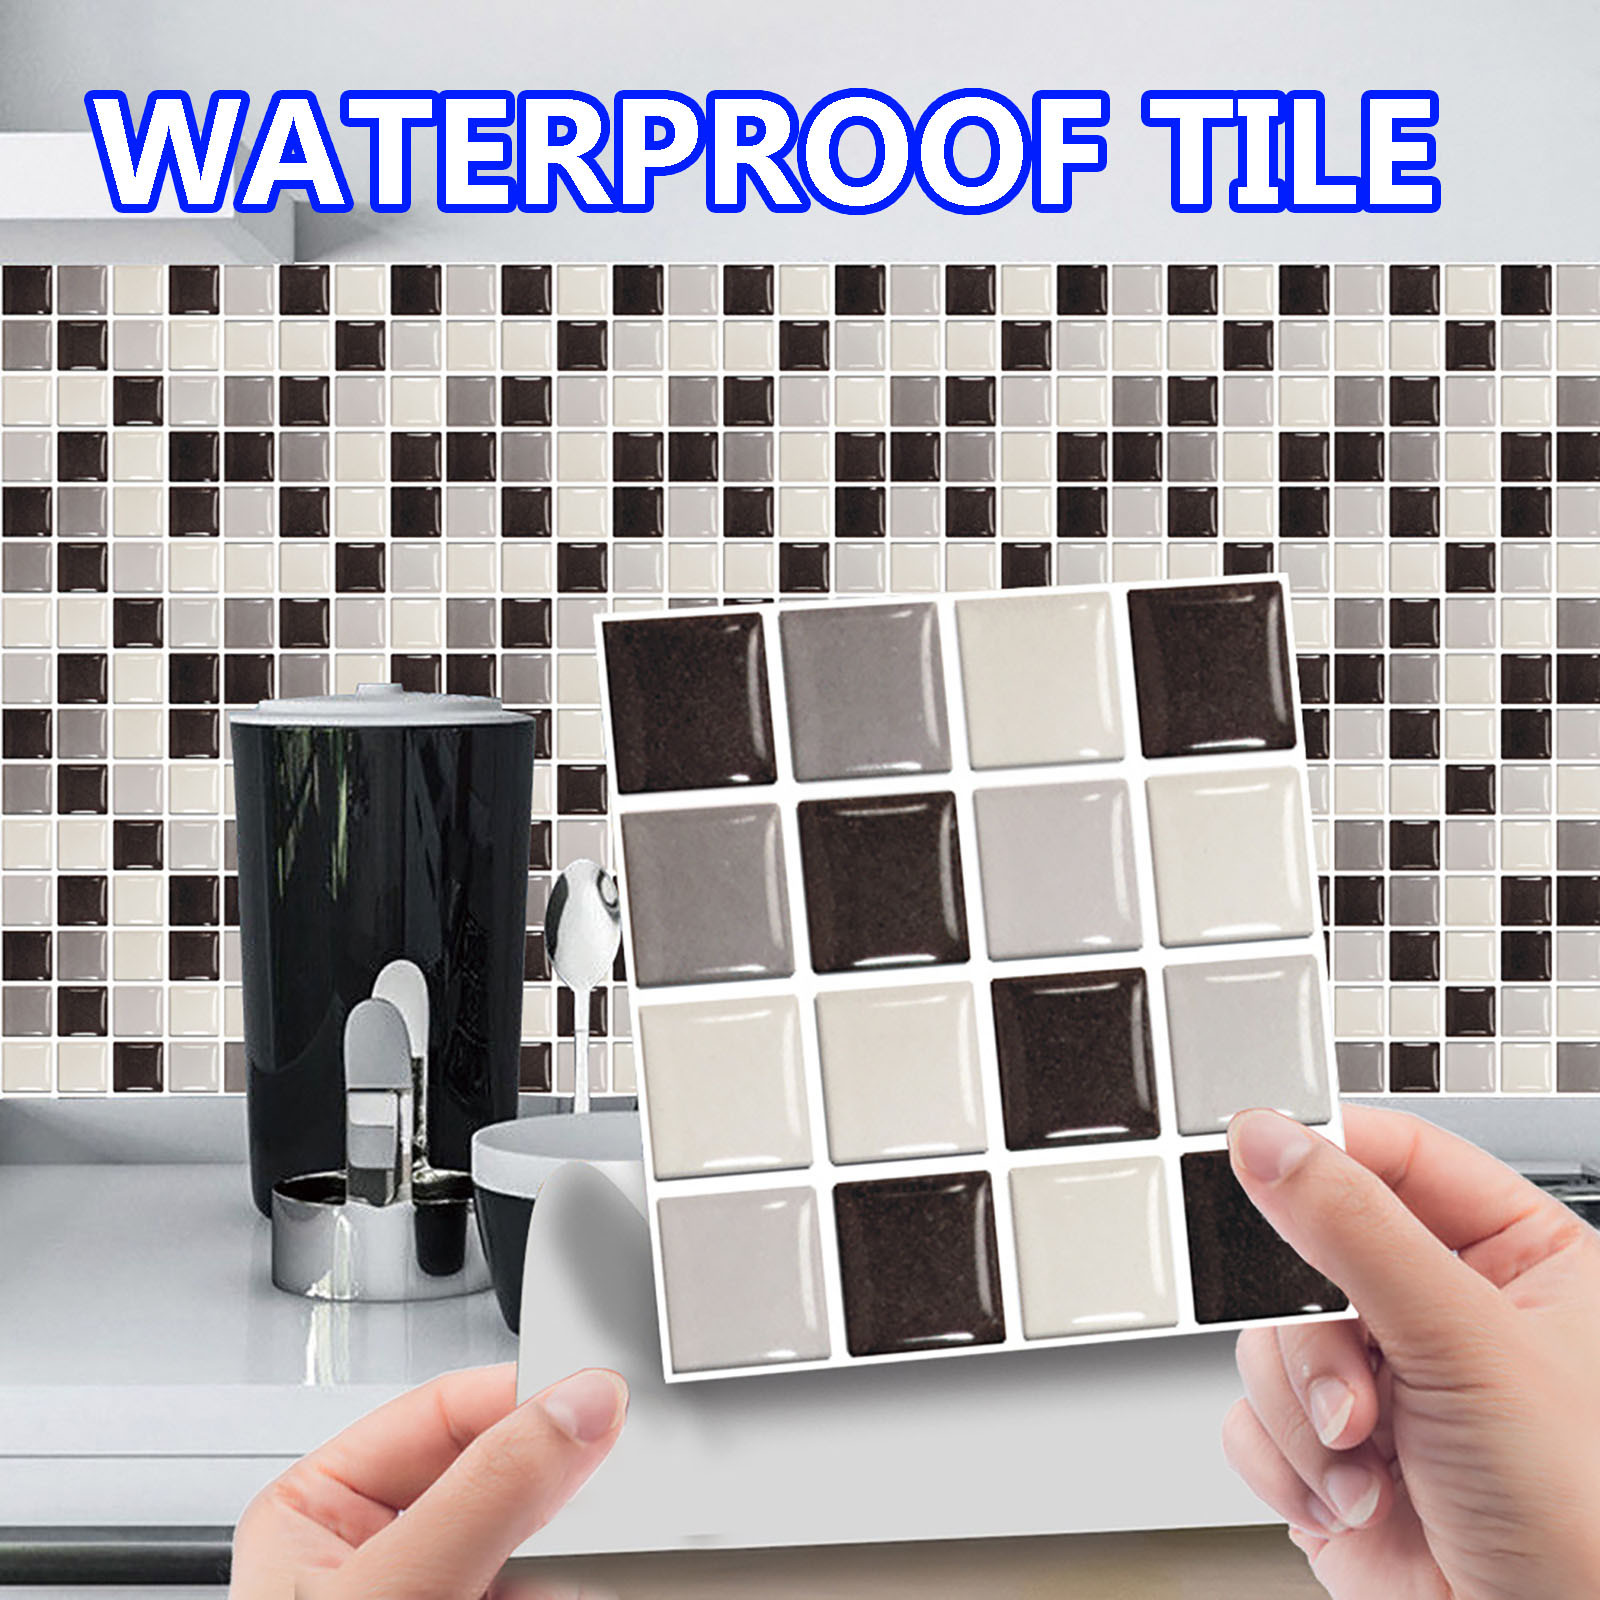 10pc 3D Crystal Tile Stickers mosaic glass stickersDIY Waterproof Self-Adhesive Wall Stickers Kitchen Bathroom Home Decor #40